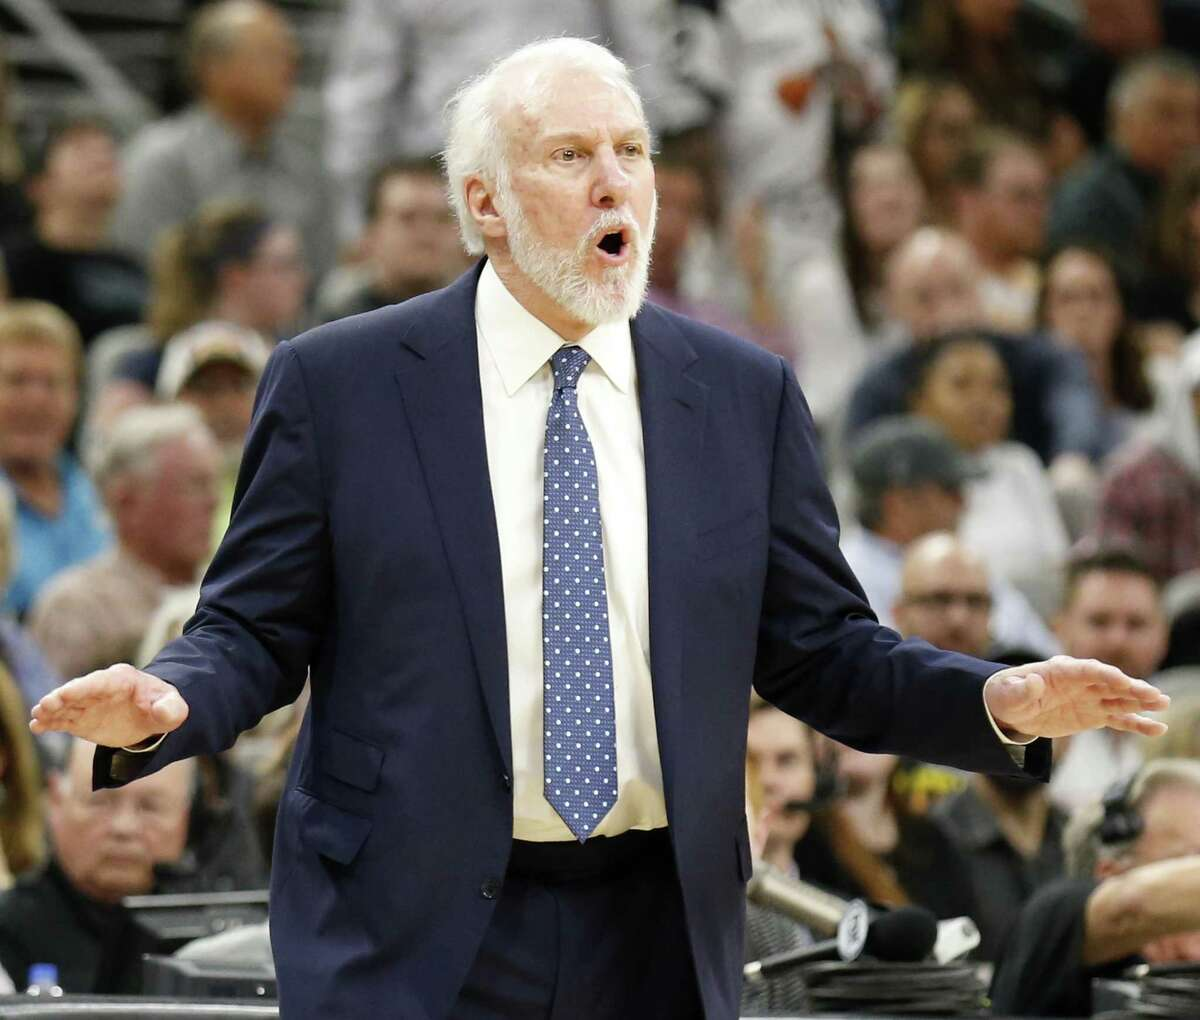 San Antonio Spurs head coach Gregg Popovich calls a play during a recent game against the Utah Jazz at the AT&T Center. Readers go after the coach for his latest political comments.